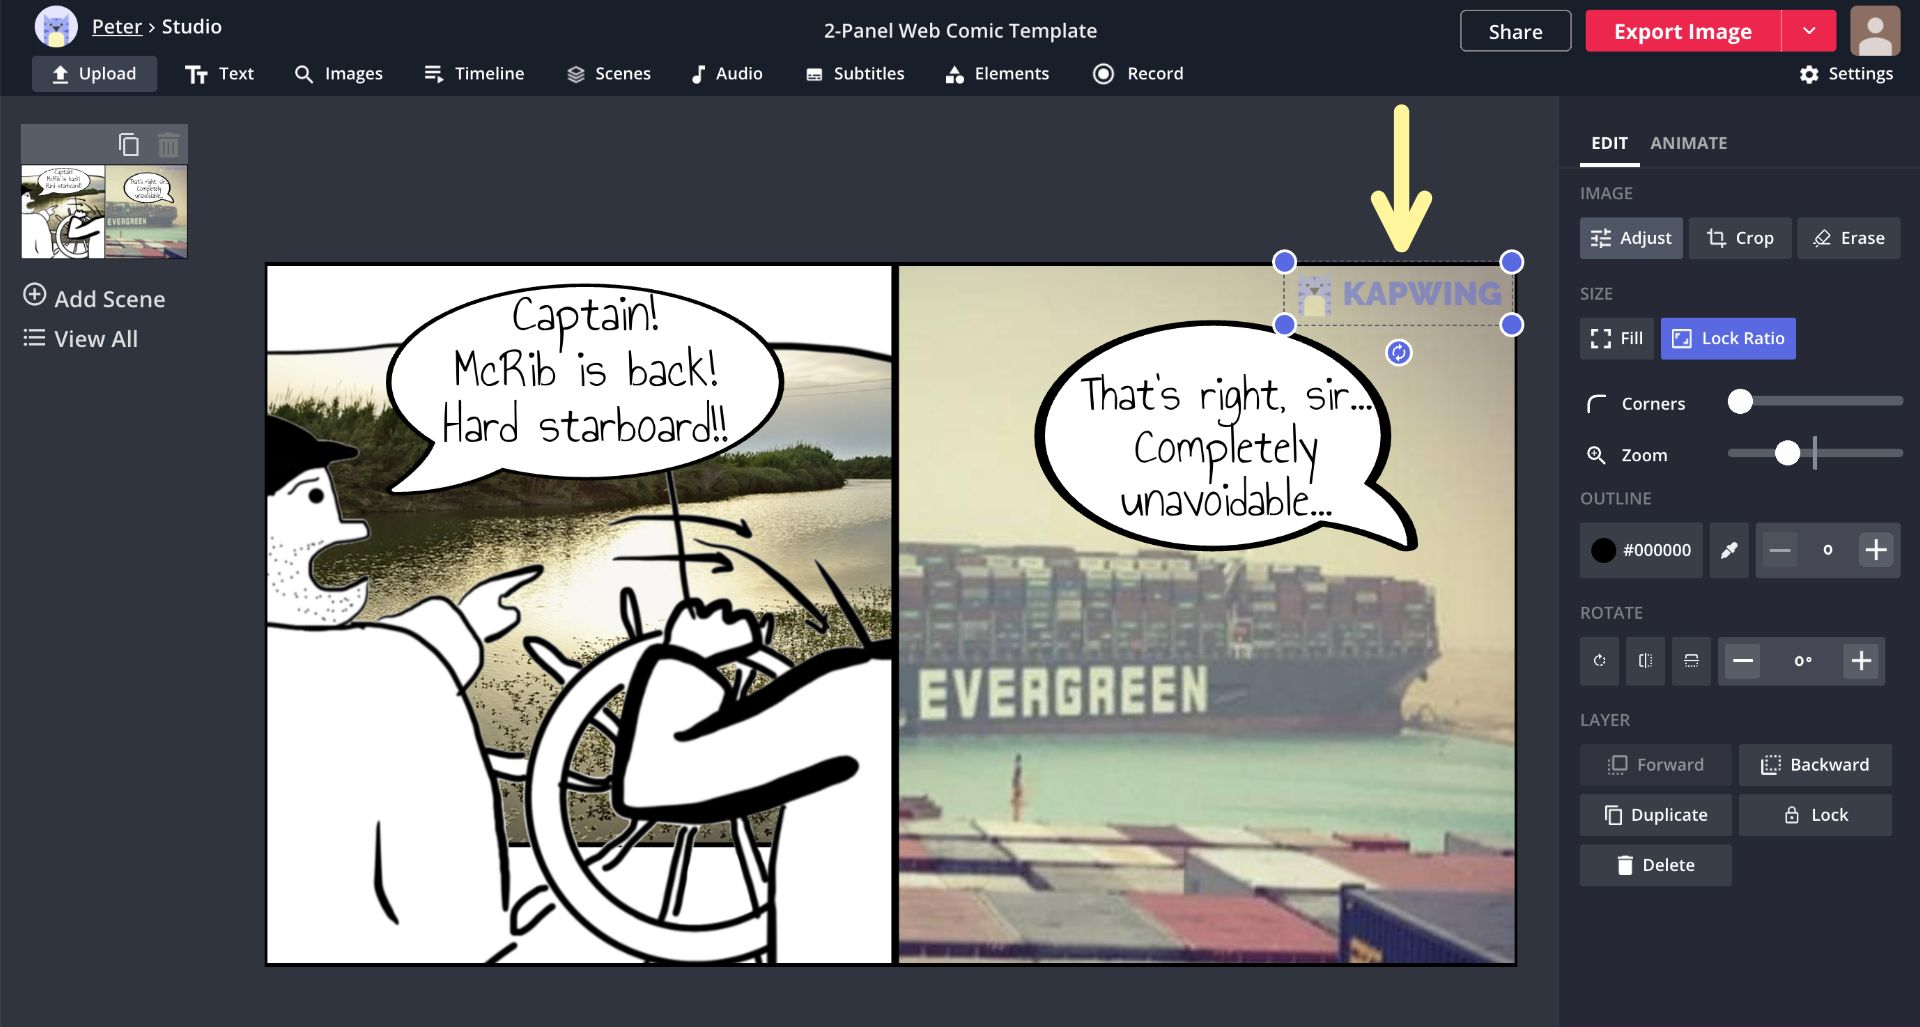 A screenshot showing how to add a watermark or signature to a comic strip in the Kapwing Studio.